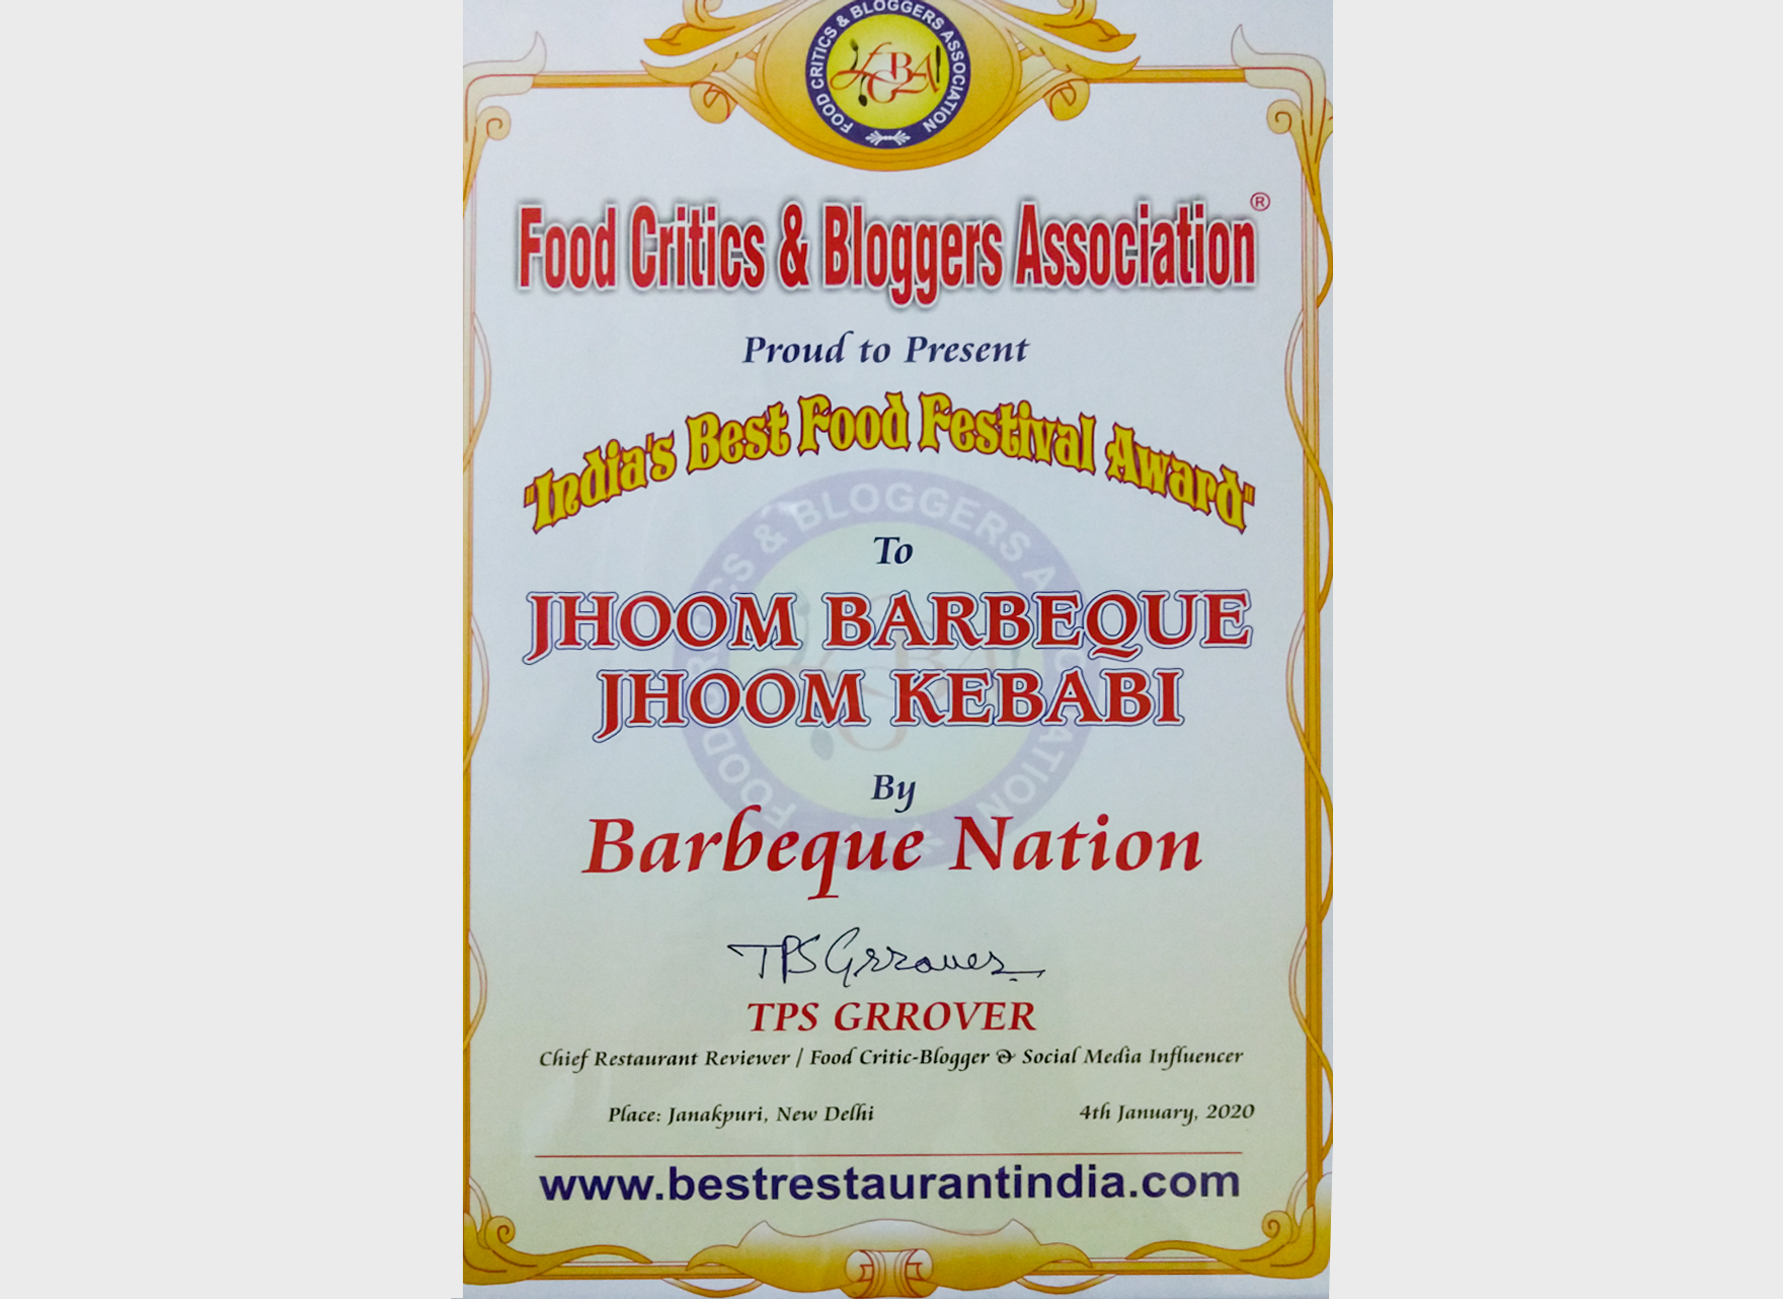 Food Critics & Bloggers Association